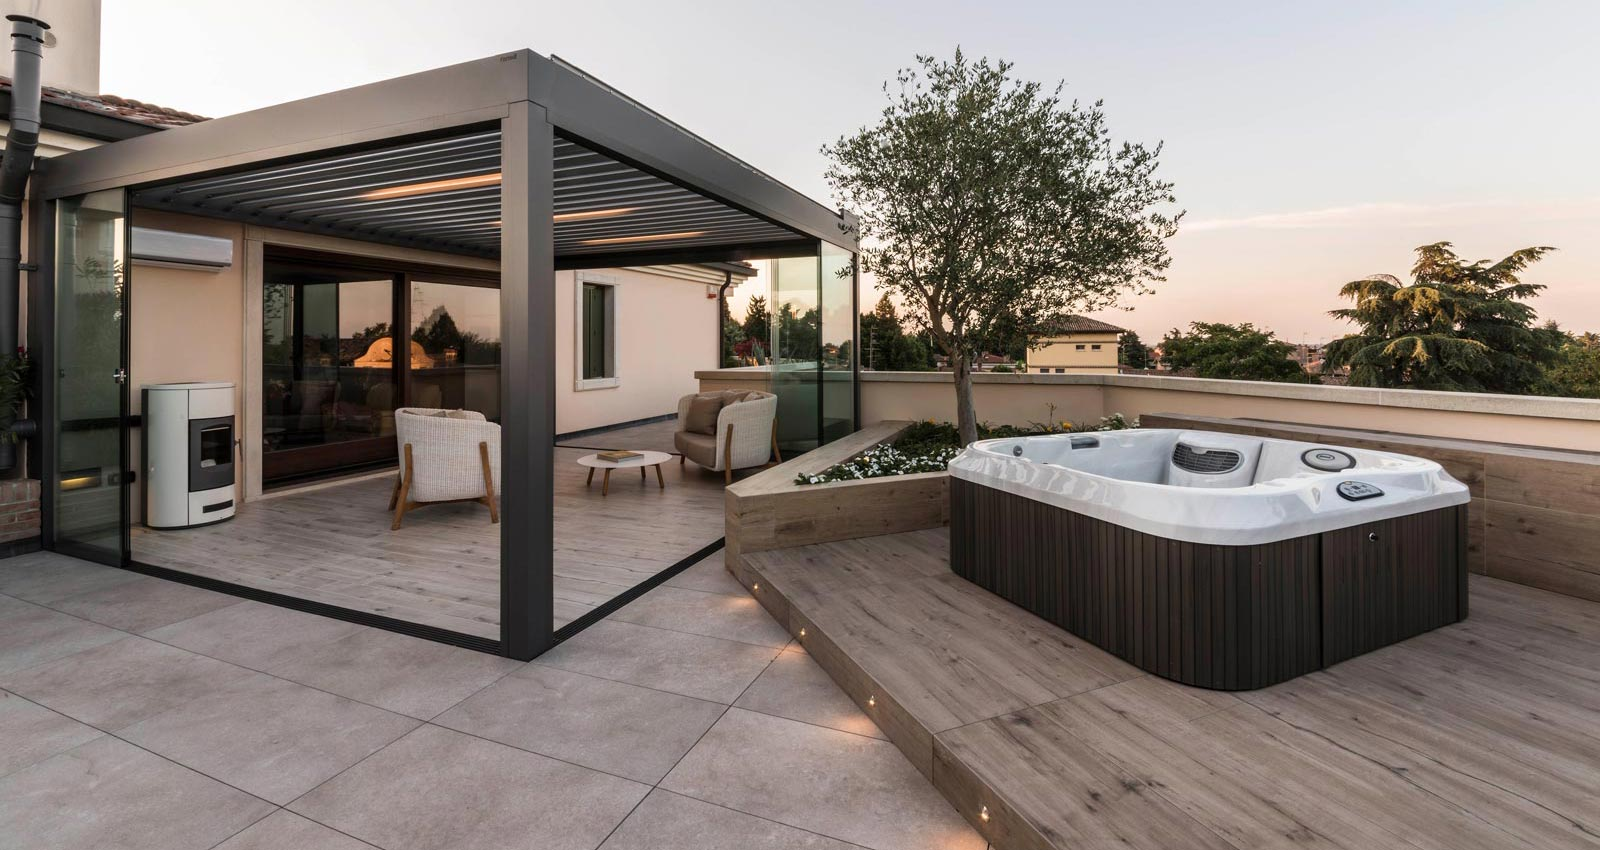 Wood and stone in an innovative outdoor refurbishment project using porcelain stoneware